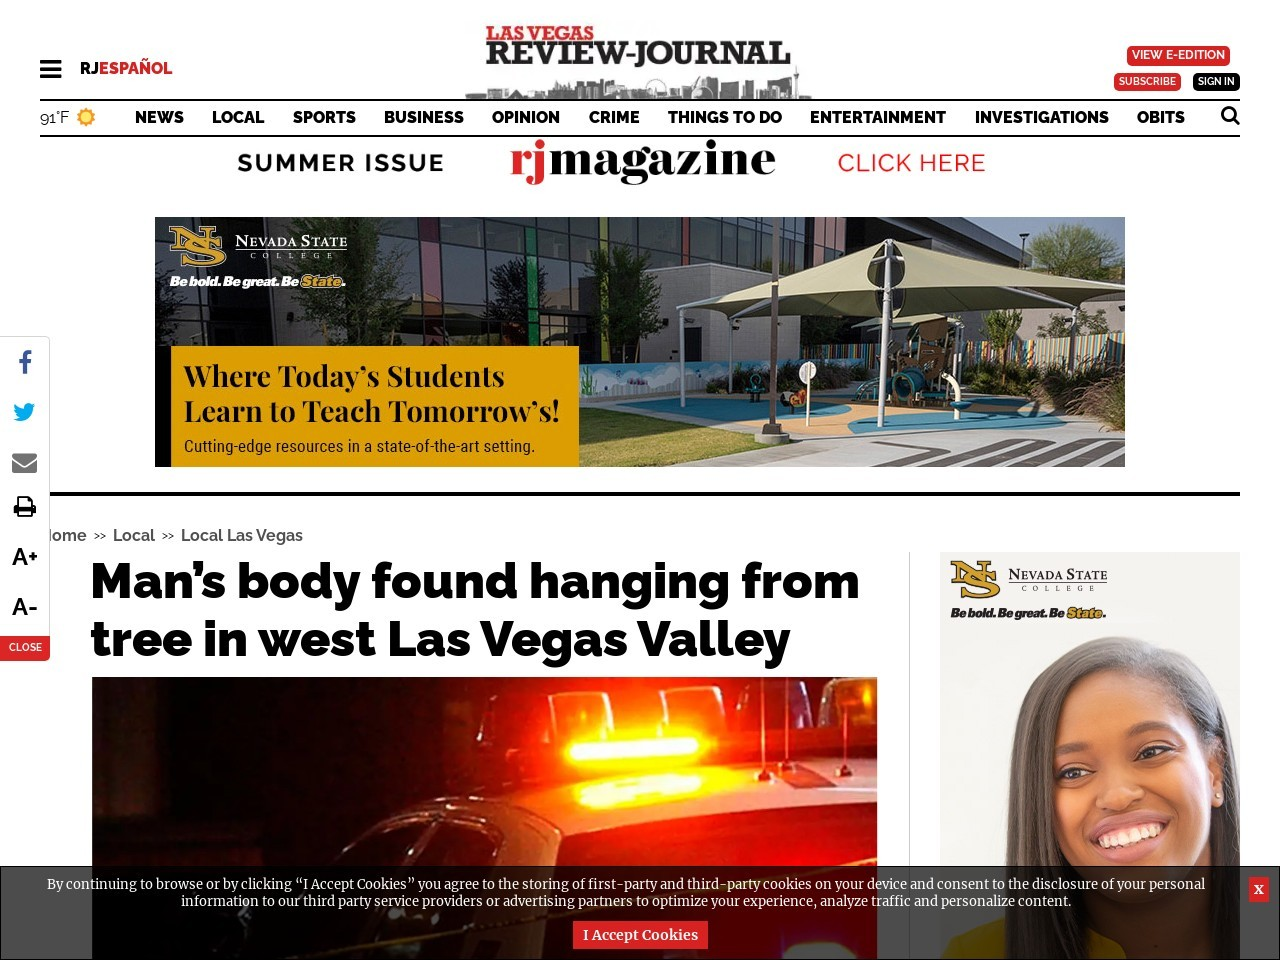 Man's body found hanging from tree in west Las Vegas Valley